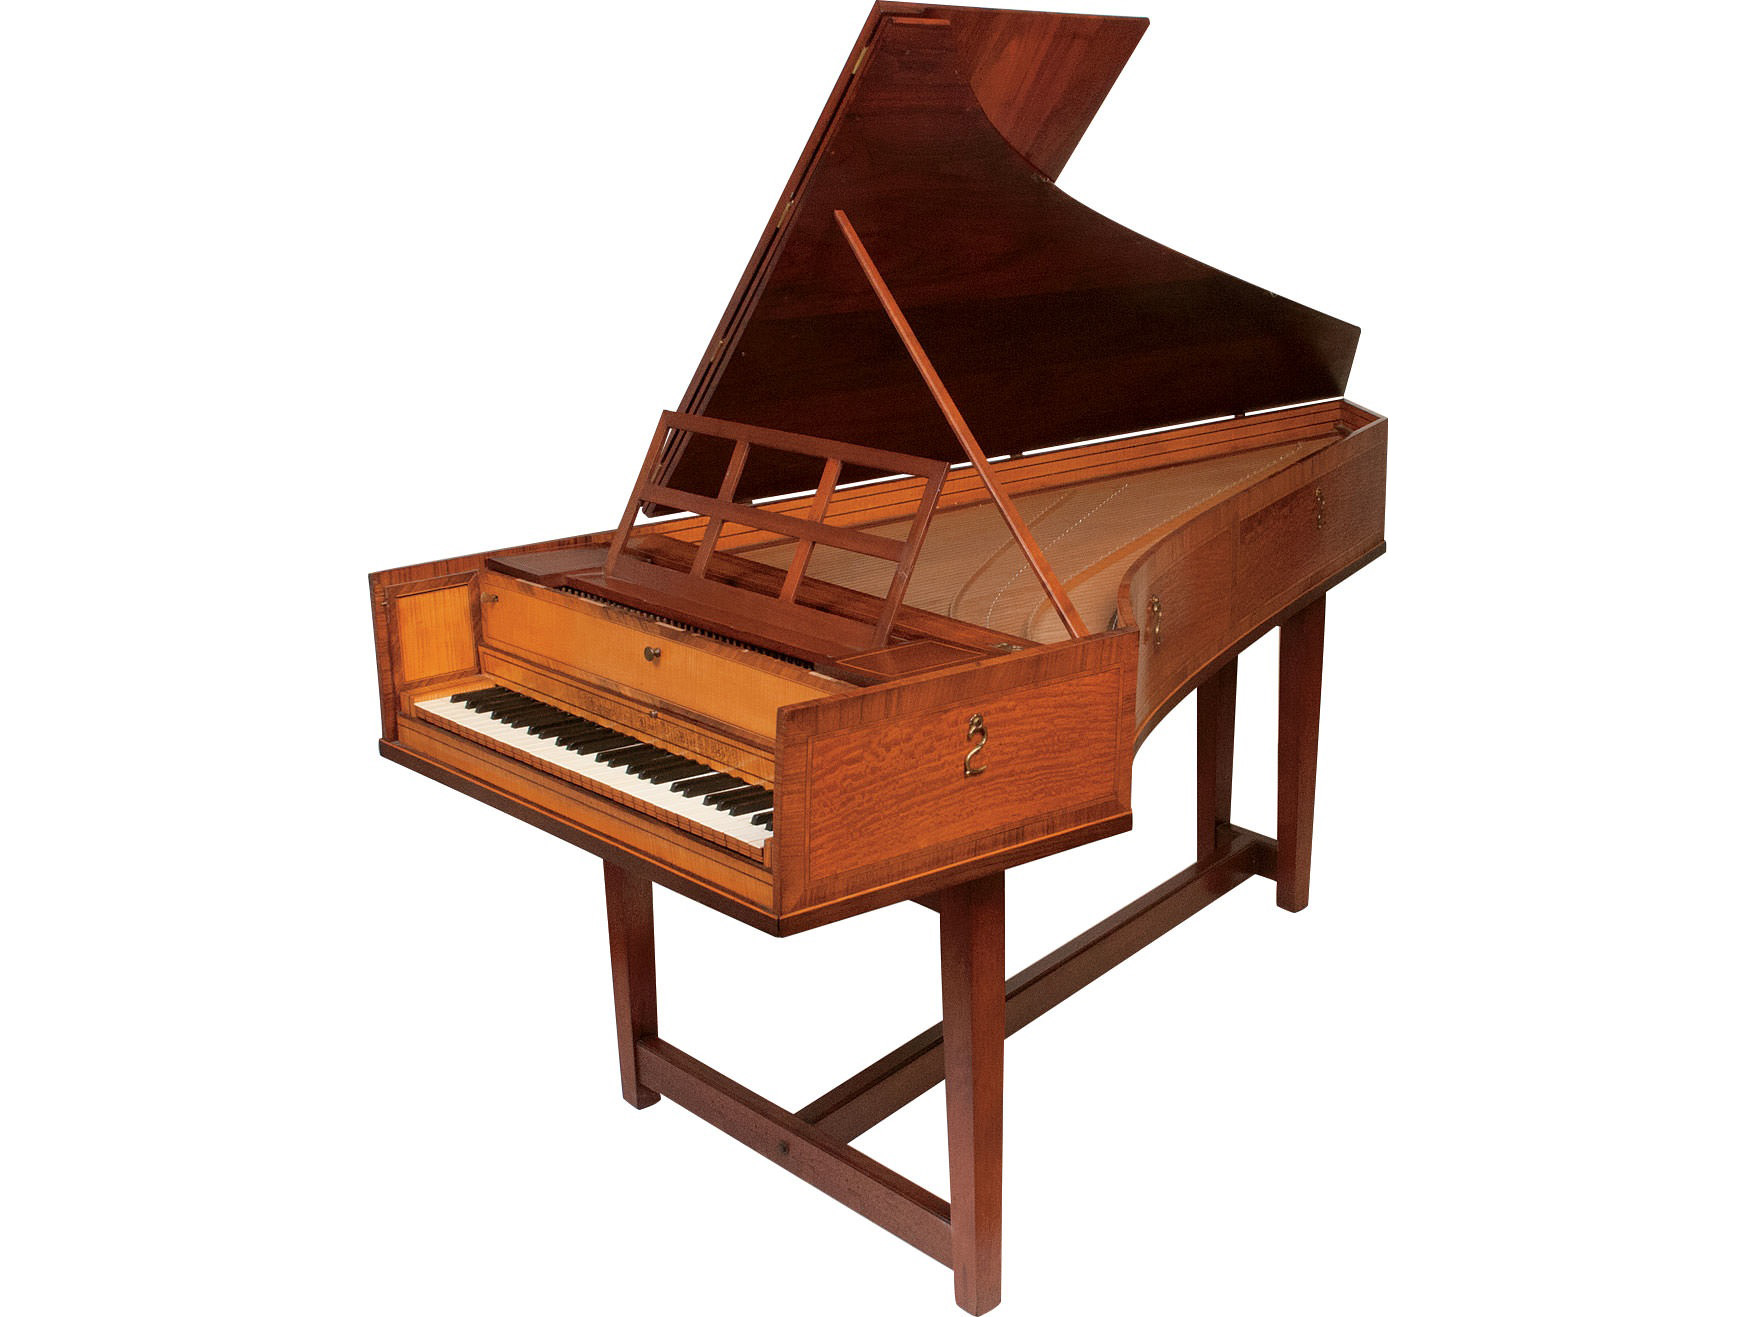 Two classic harpsichords that Harvard owns | Harvard Magazine